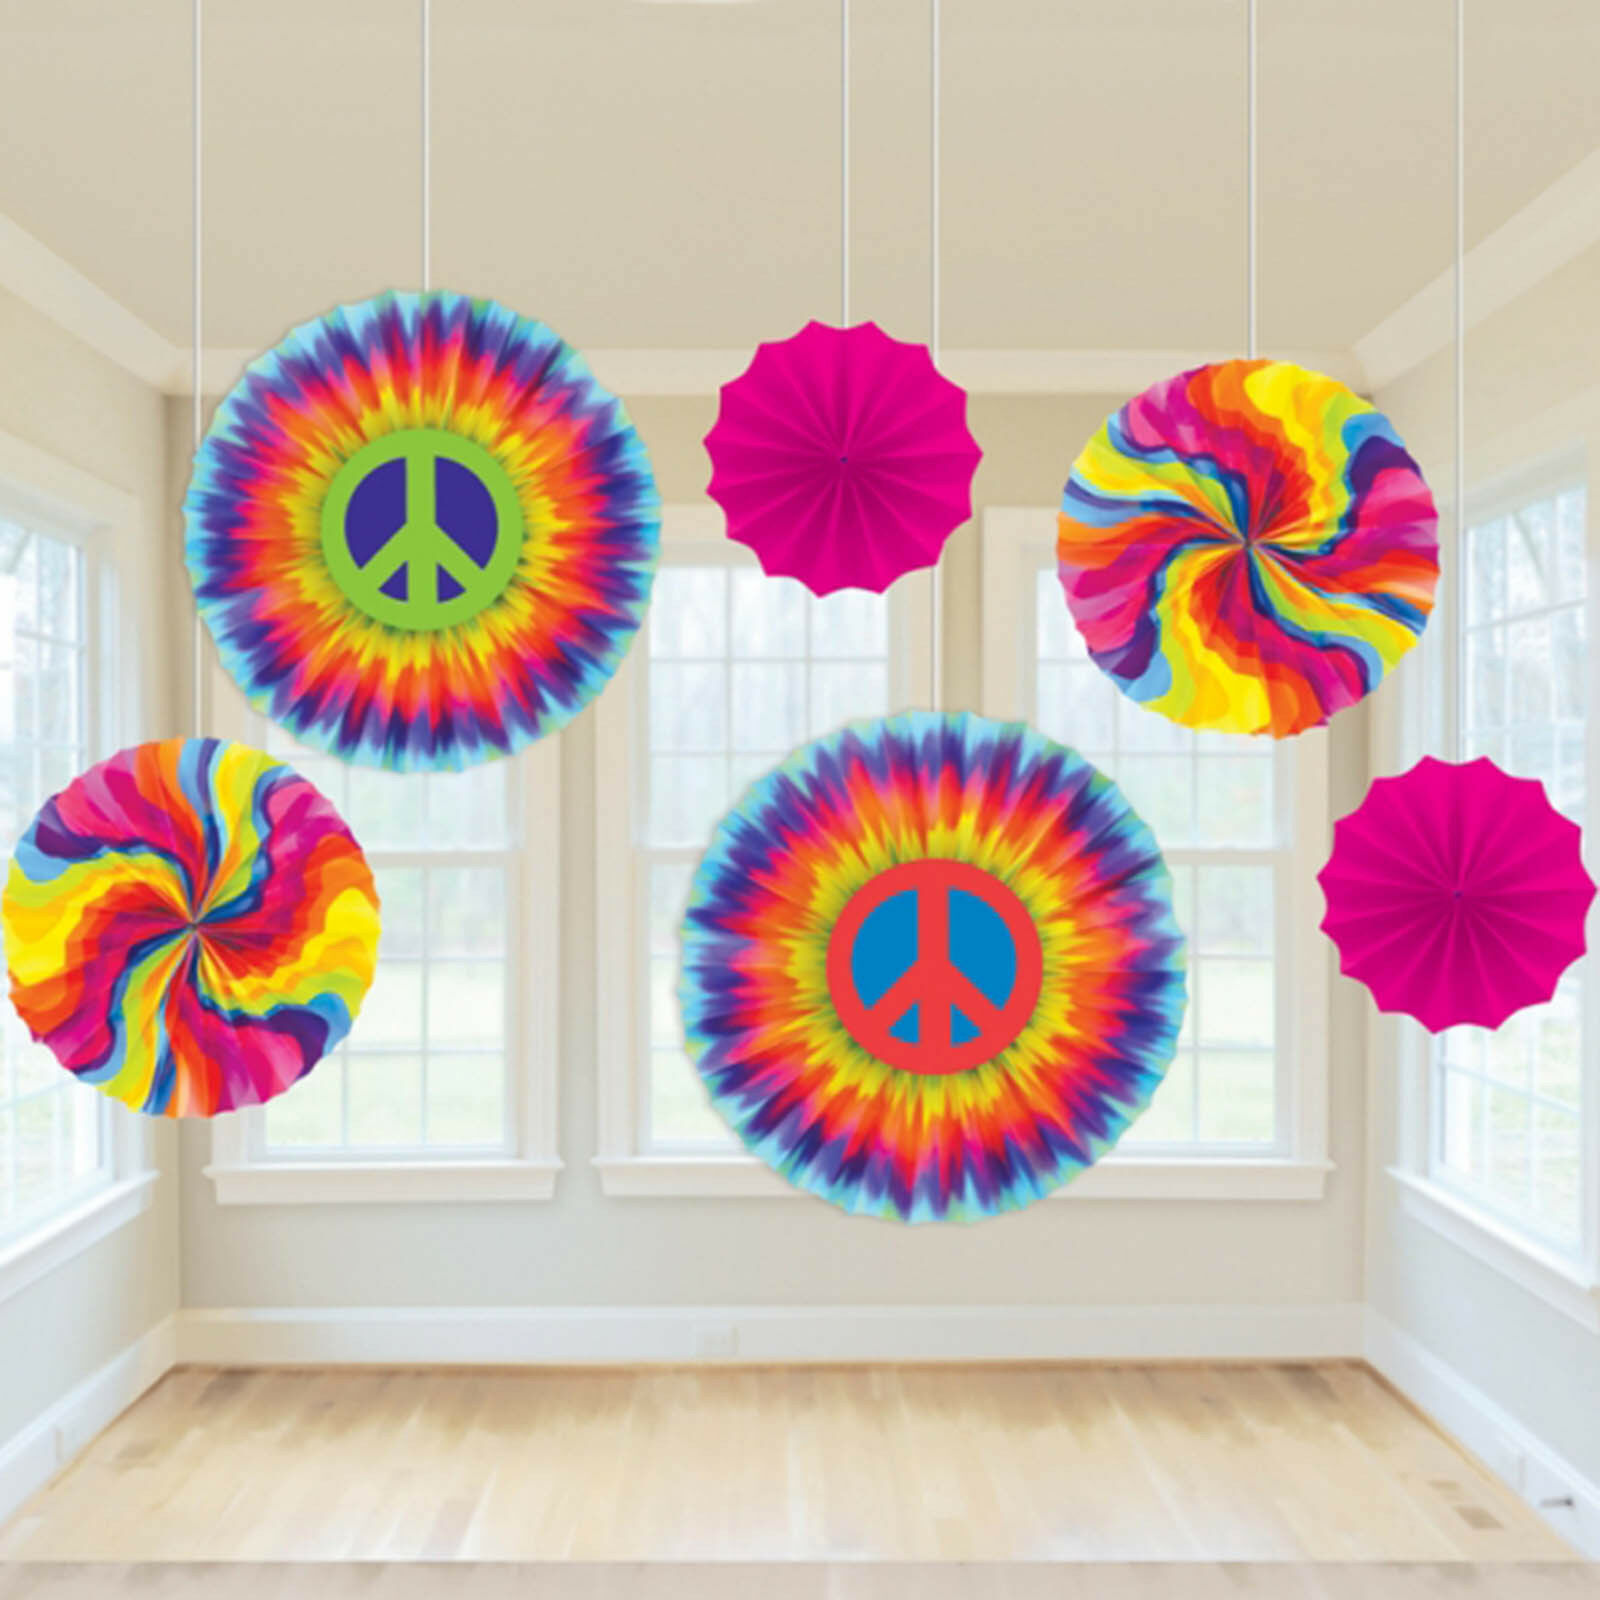 6 Assorted Feeling Groovy 60's Disco Tie-dye Party Hanging Paper Fan Decorations